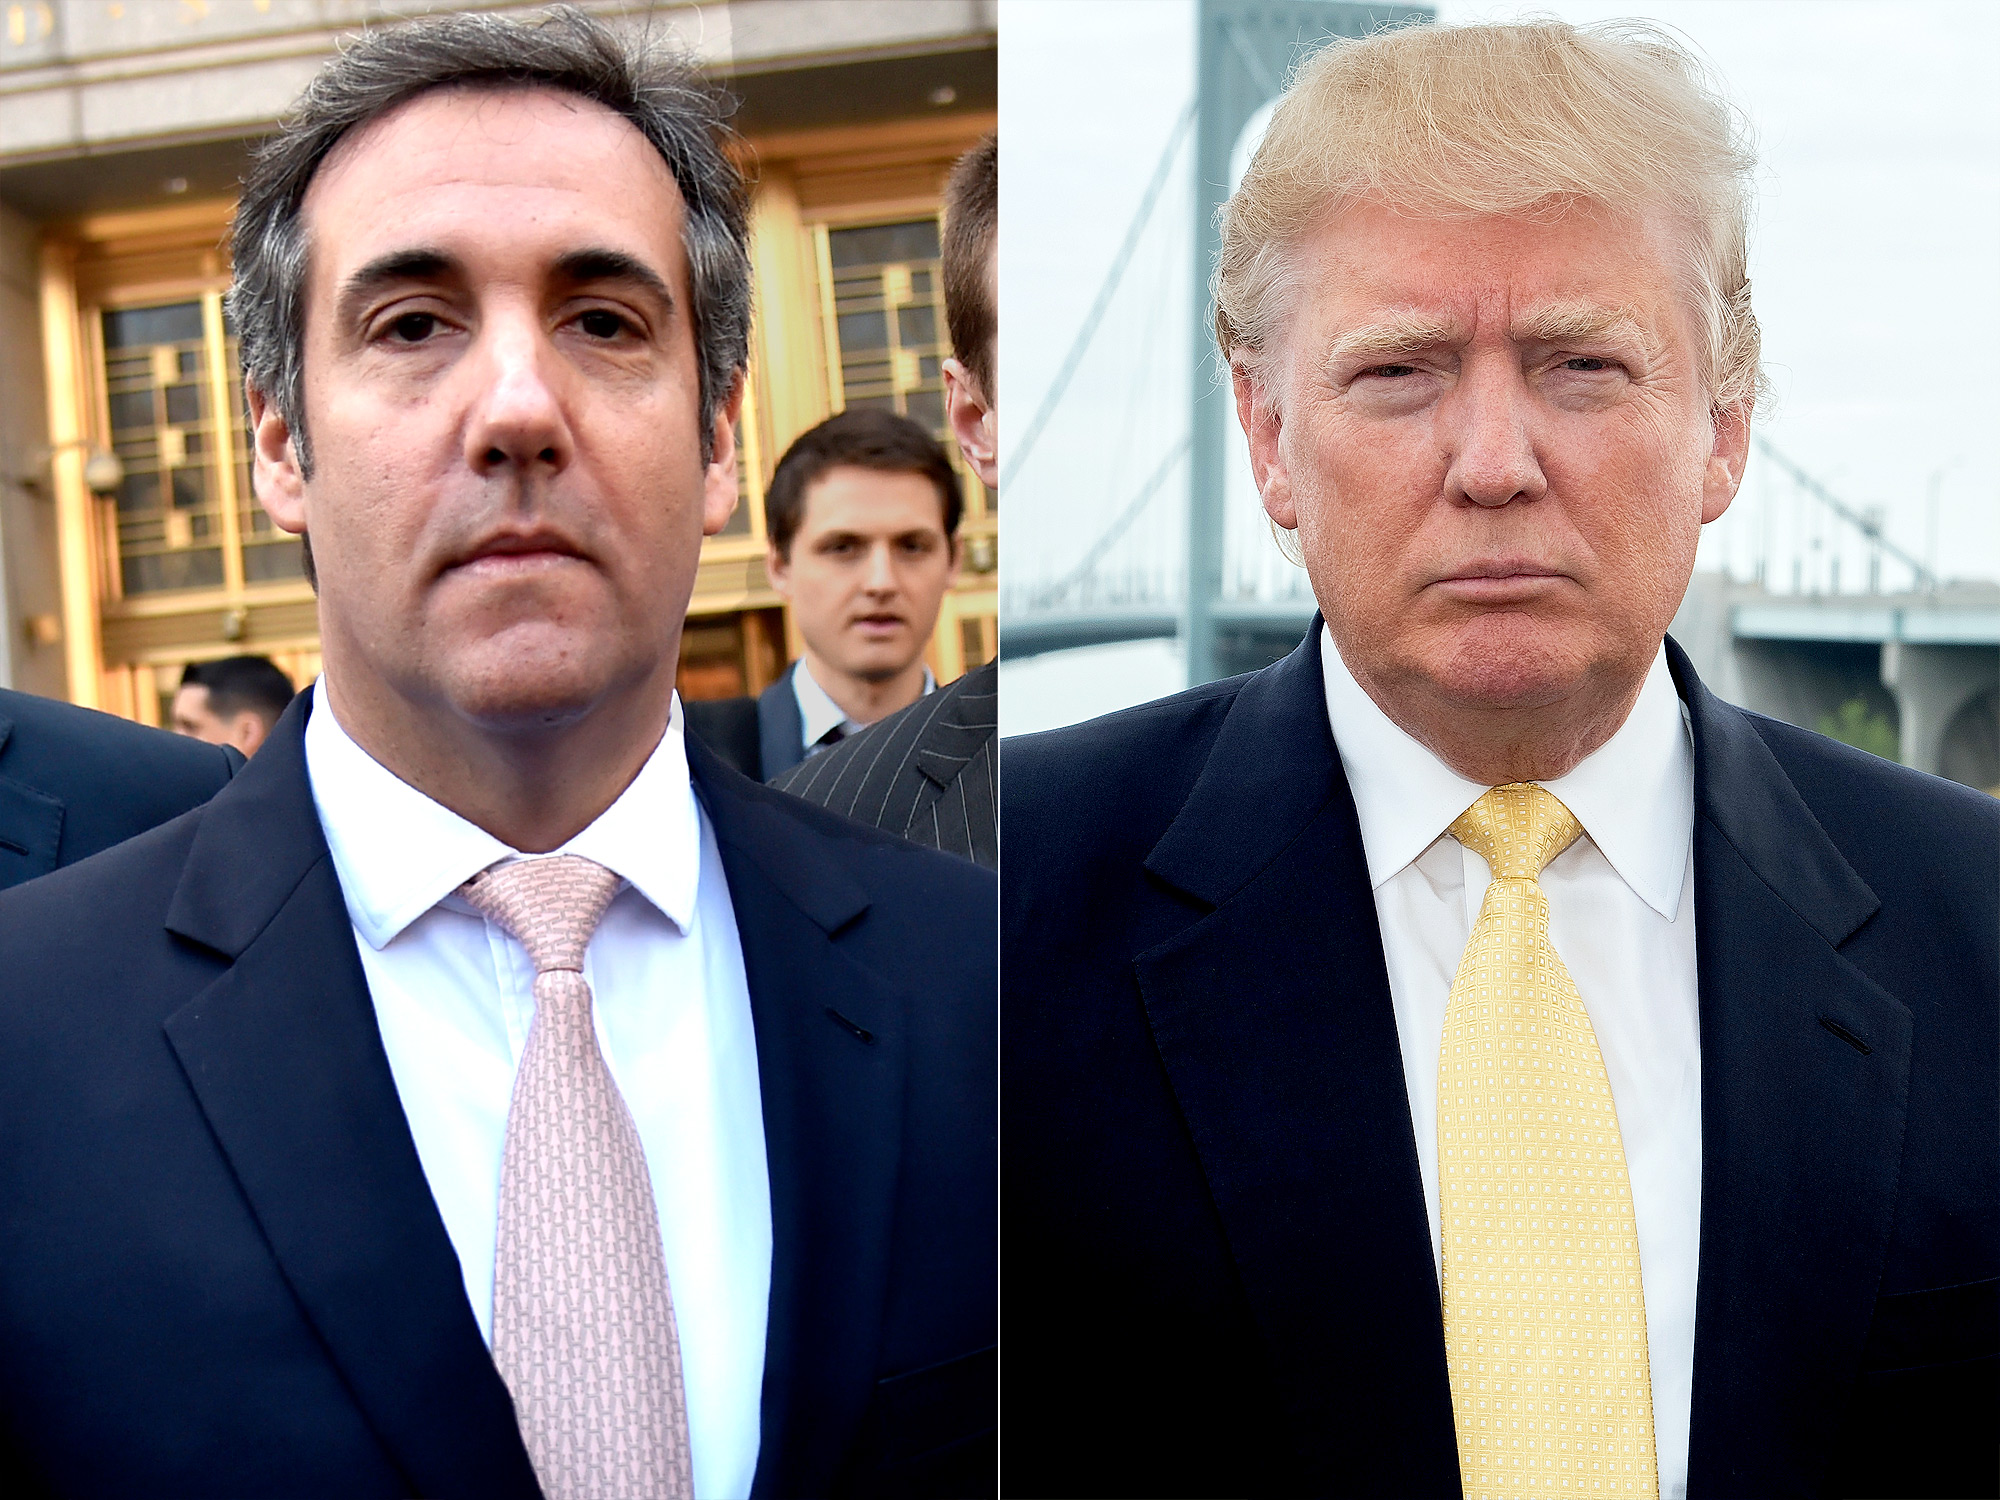 michael-cohen-reveals-donald-trump-told-him-his-voters-would-think-he-was-cool-for-hooking-up-with-an-adult-film-actress